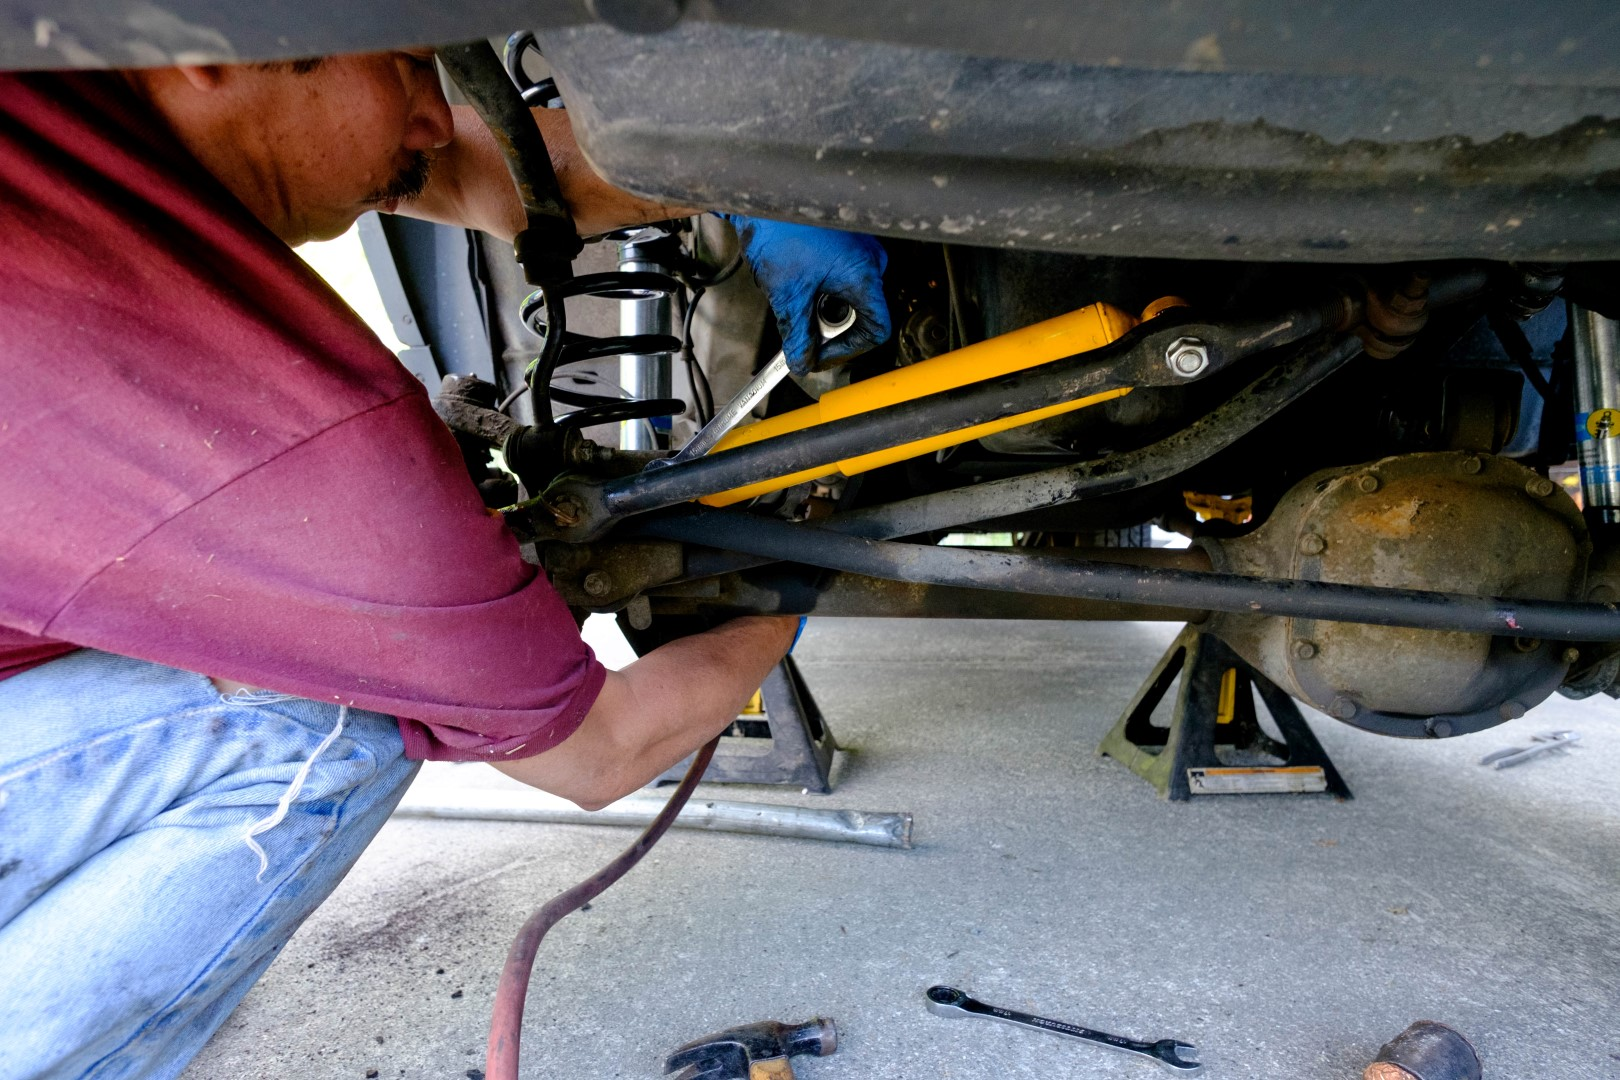 My dad installing the new steering stabilizer